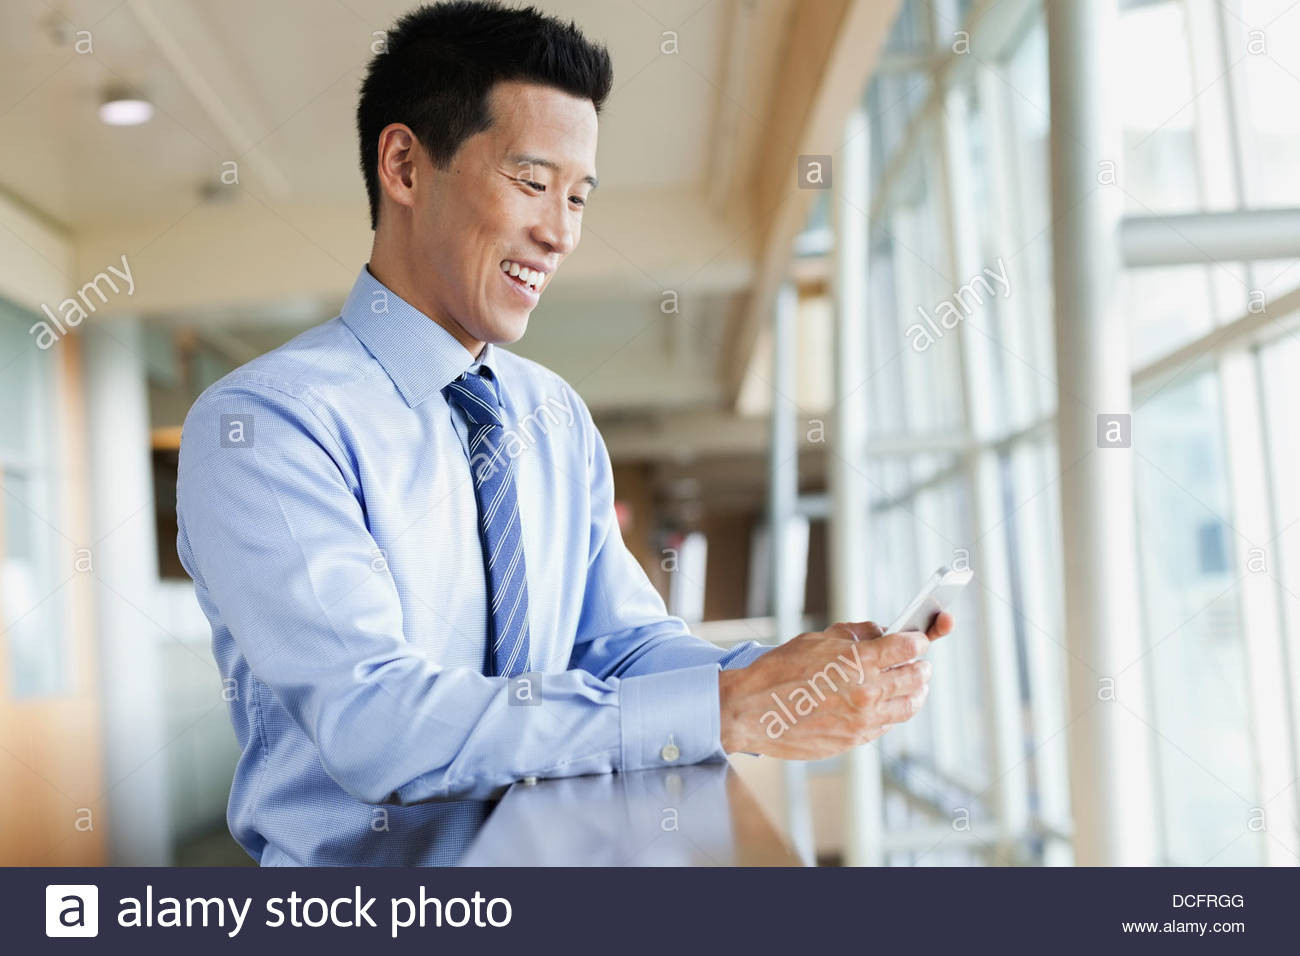 Smiling businessman reading text message - Stock Image